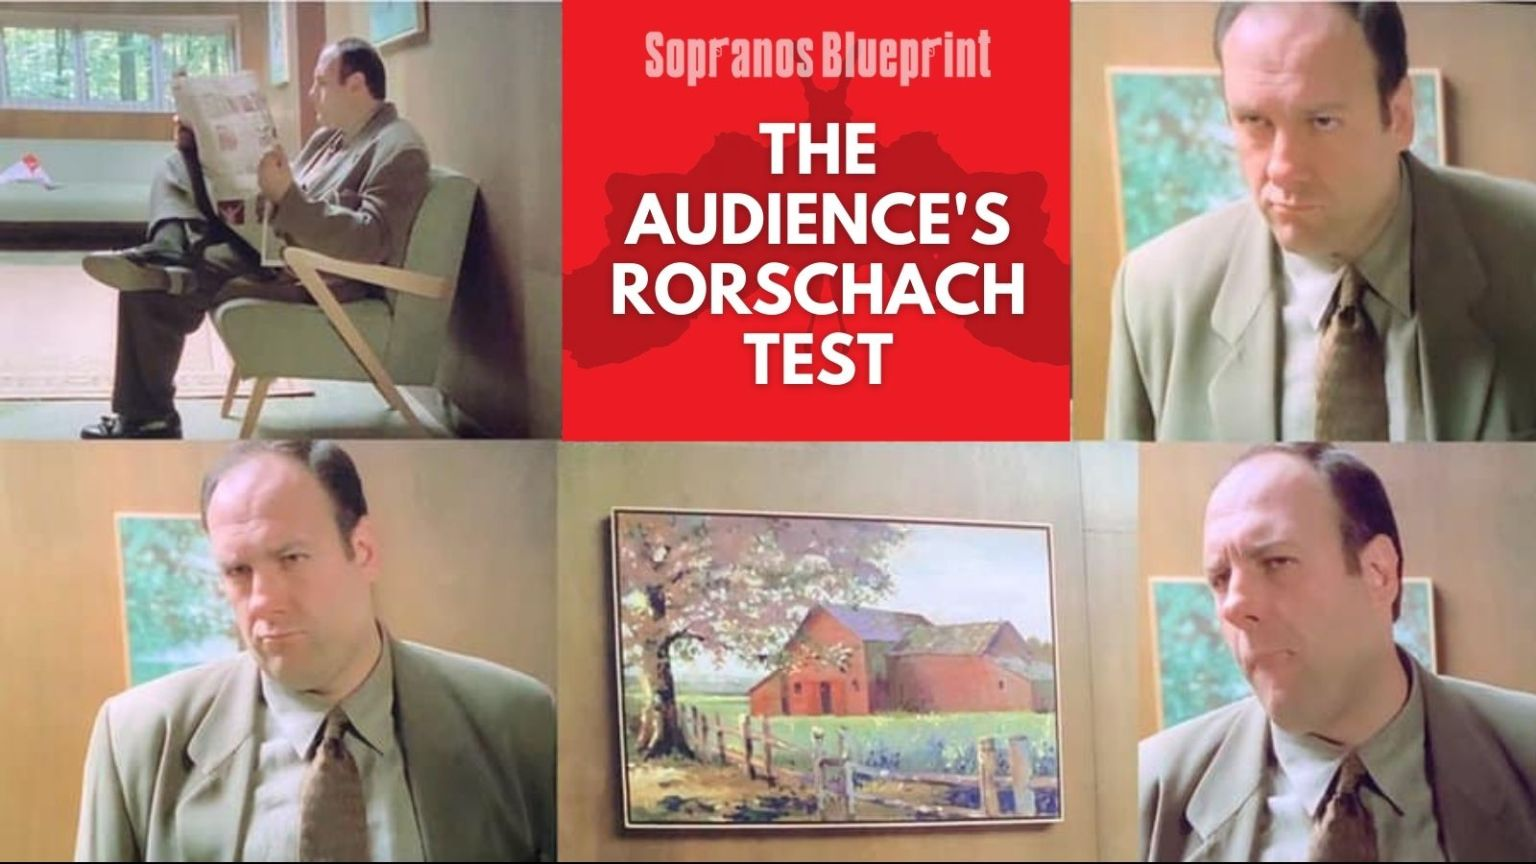 The Sopranos Rorschach Test is Our Own Unique Journey